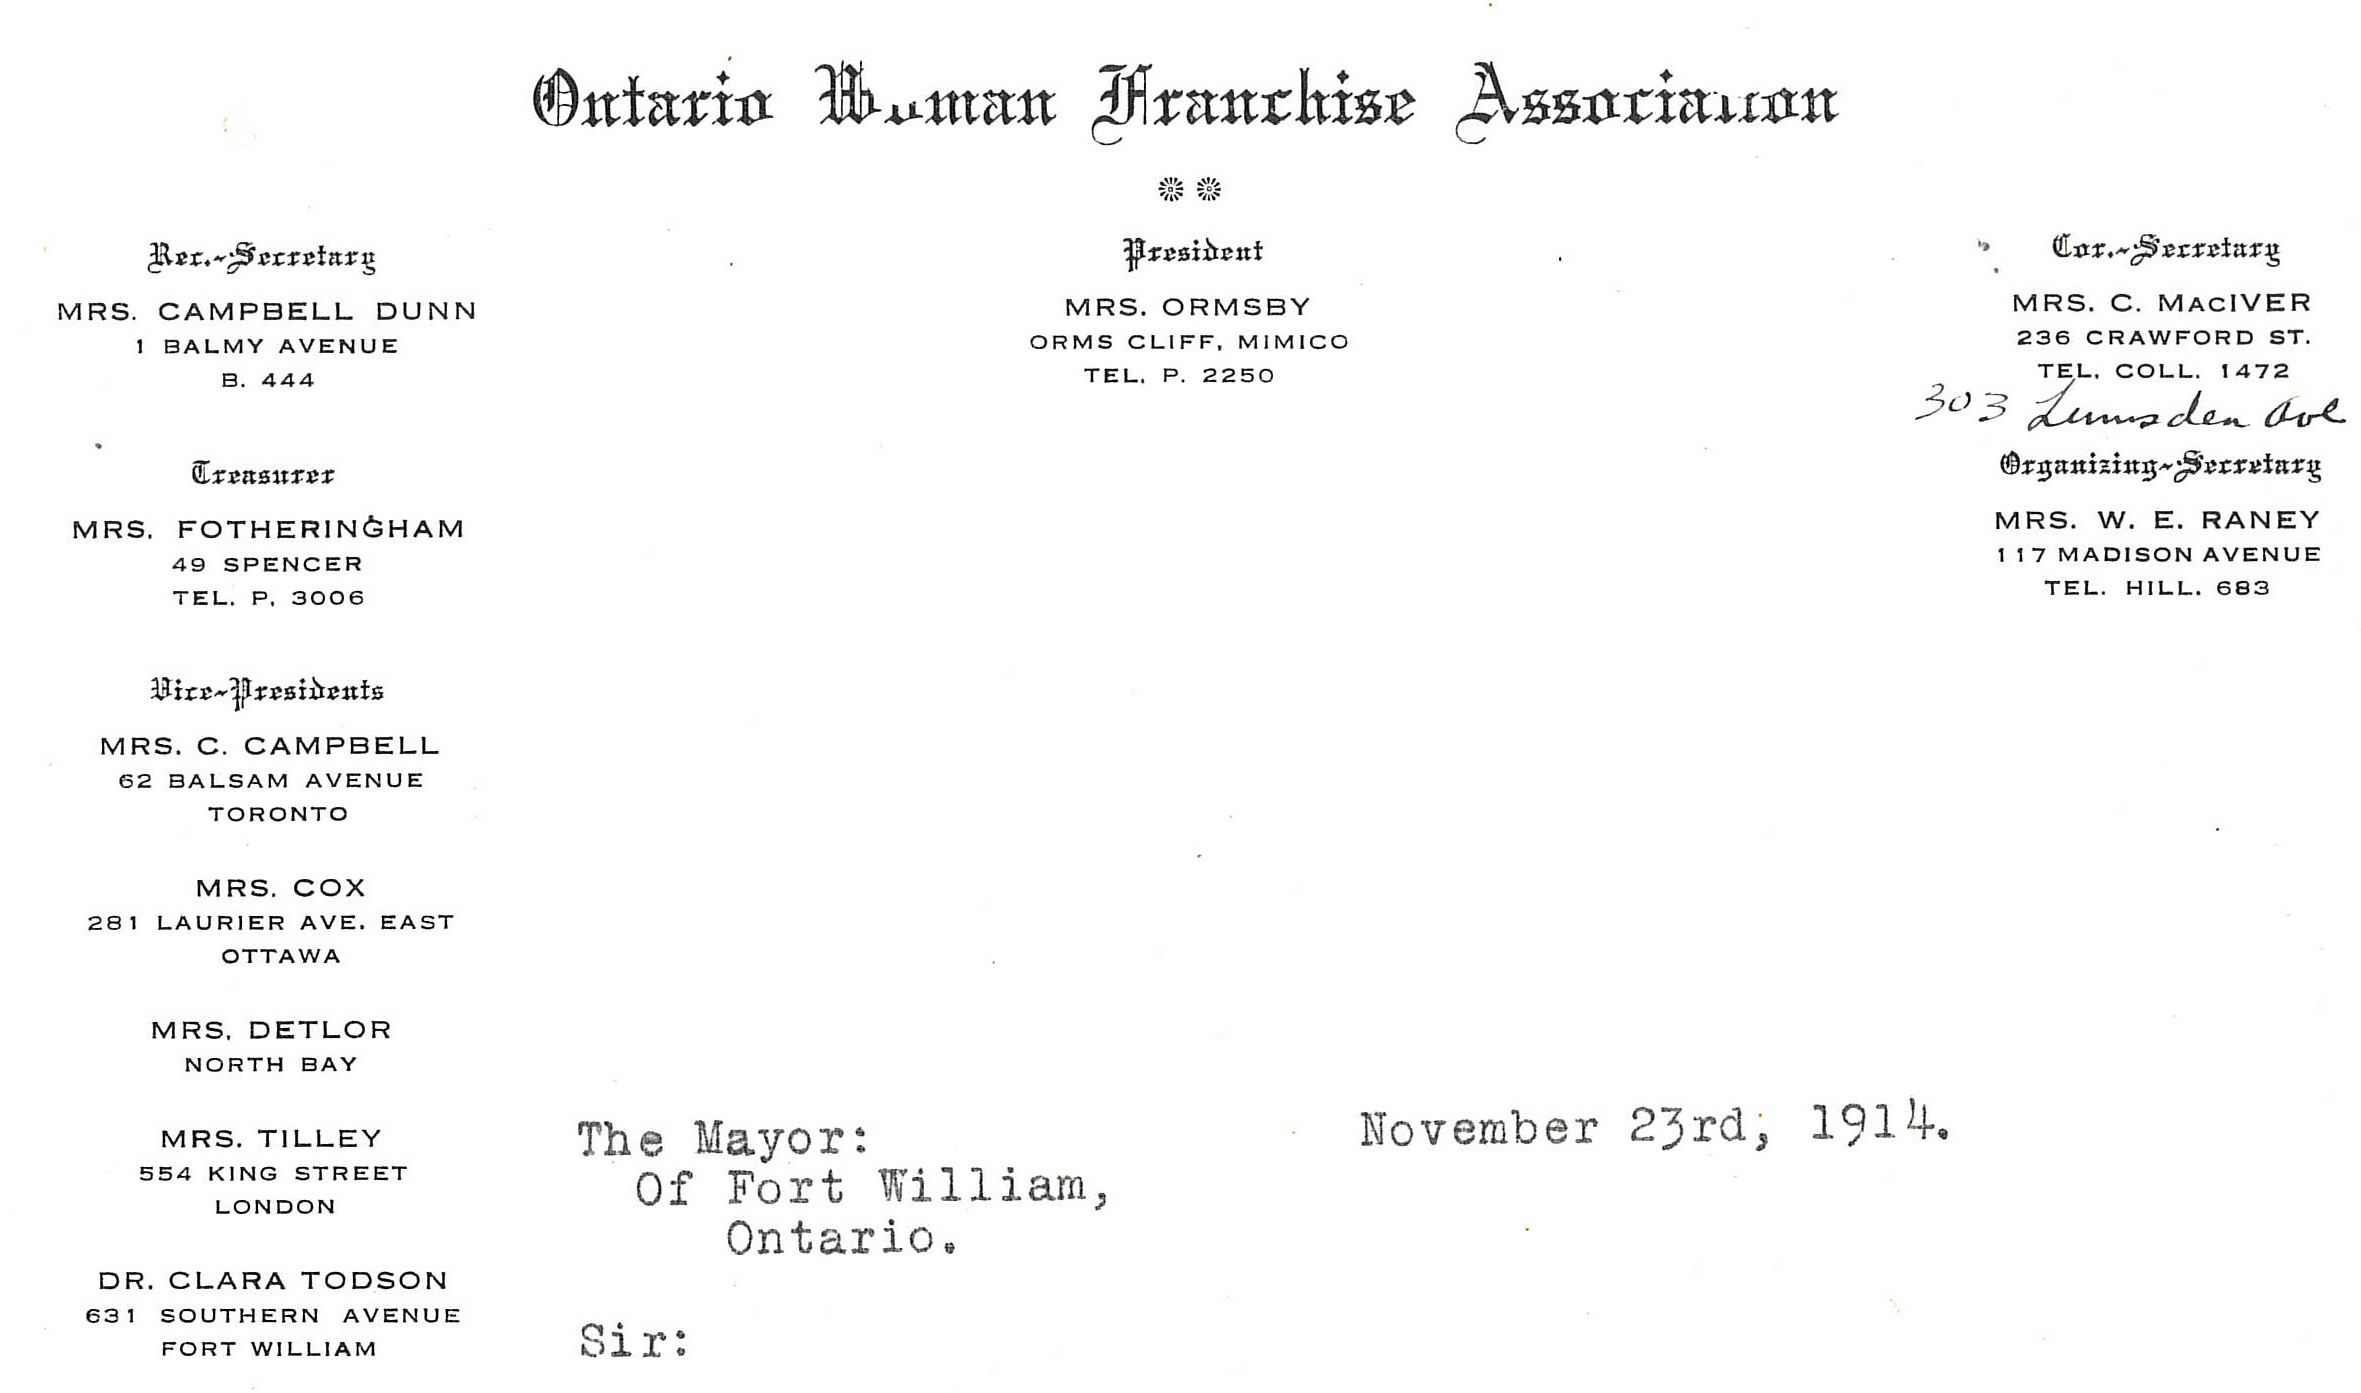 Ontario Woman Franchise Association